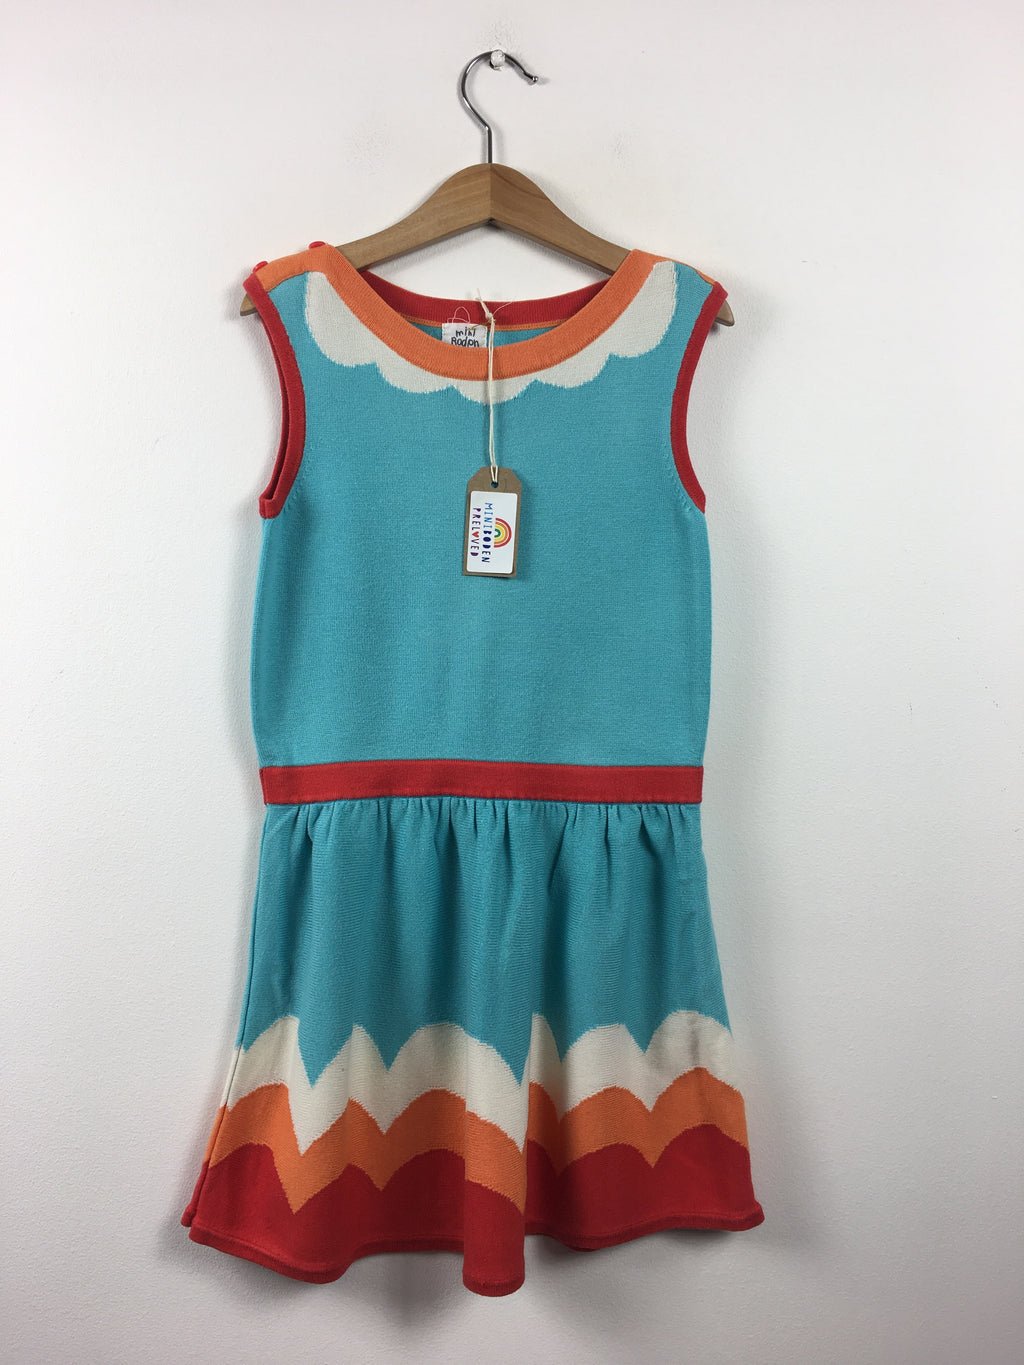 Vibrant Turquoise Knitted Dress (4-5 Years)